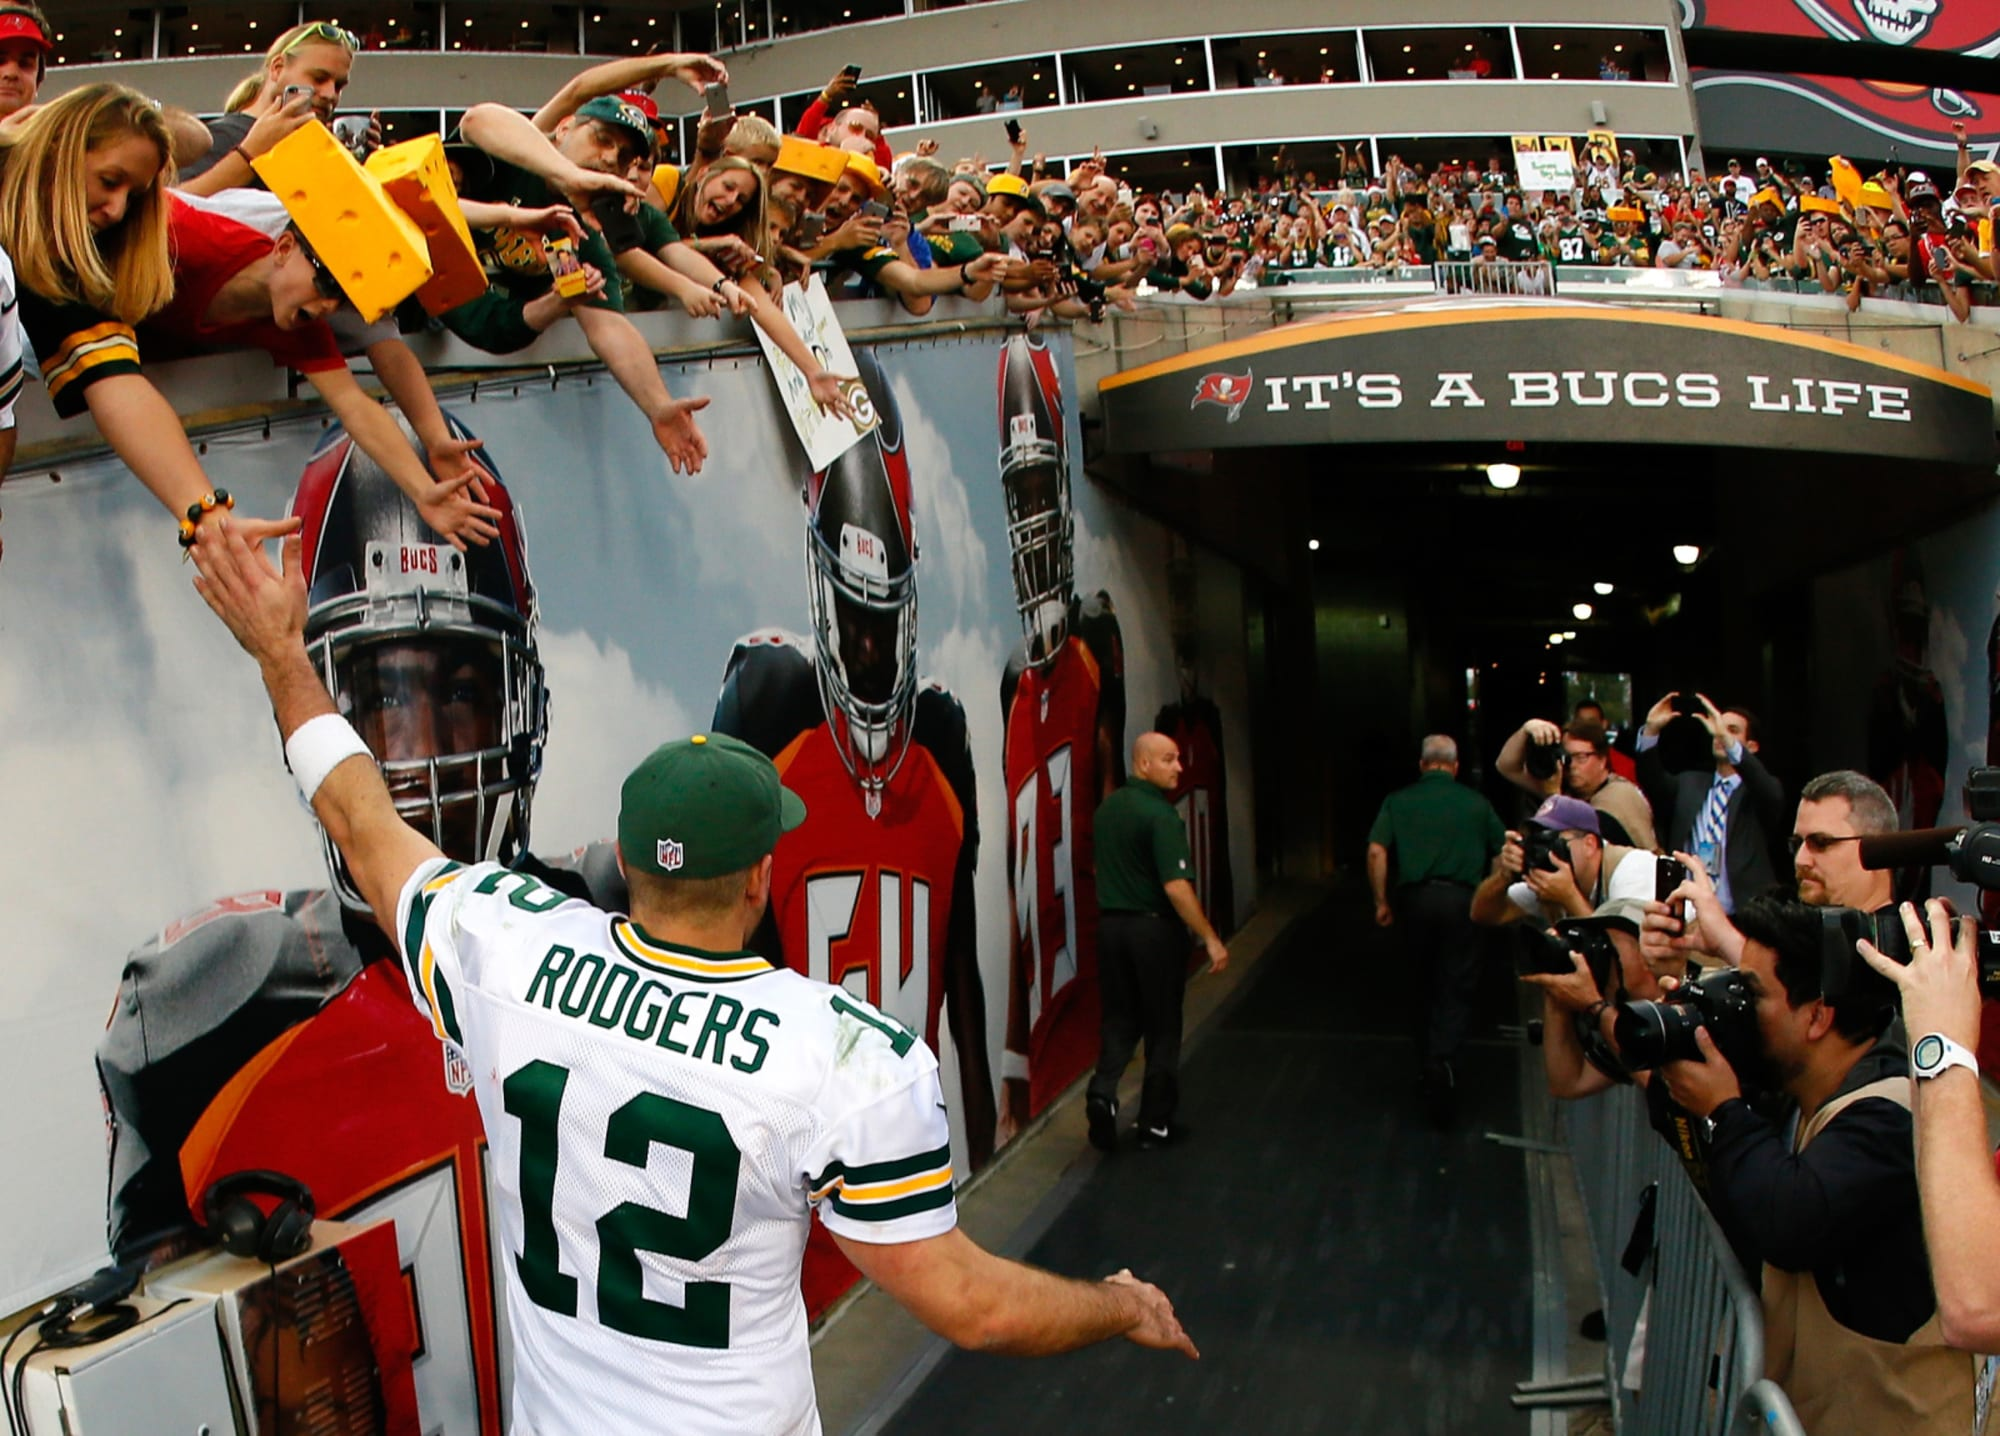 Packers: Fans will be in attendance for road game against Bucs